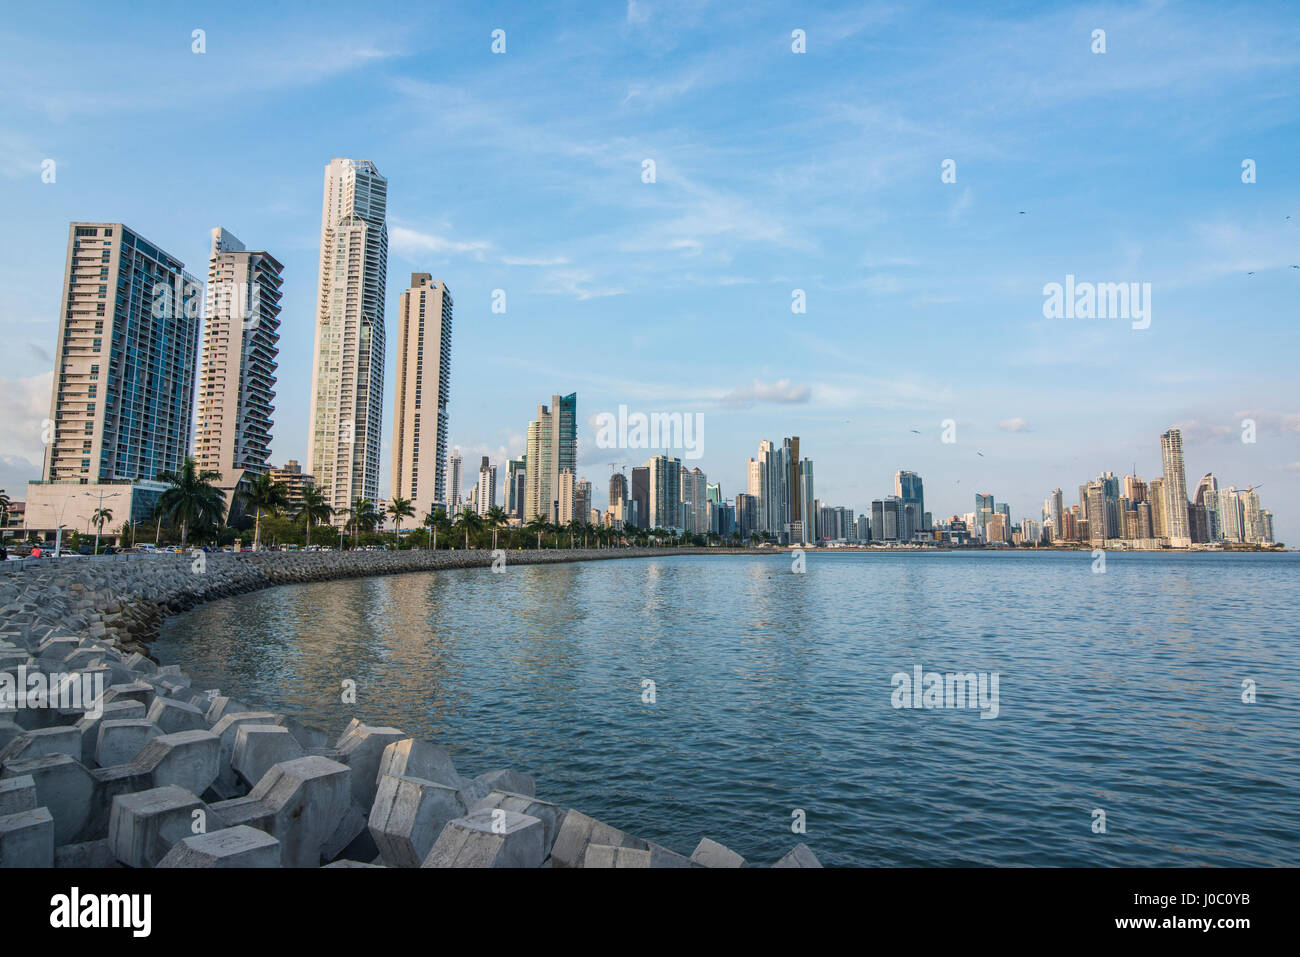 Skyline of Panama City, Panama, Central America - Stock Image